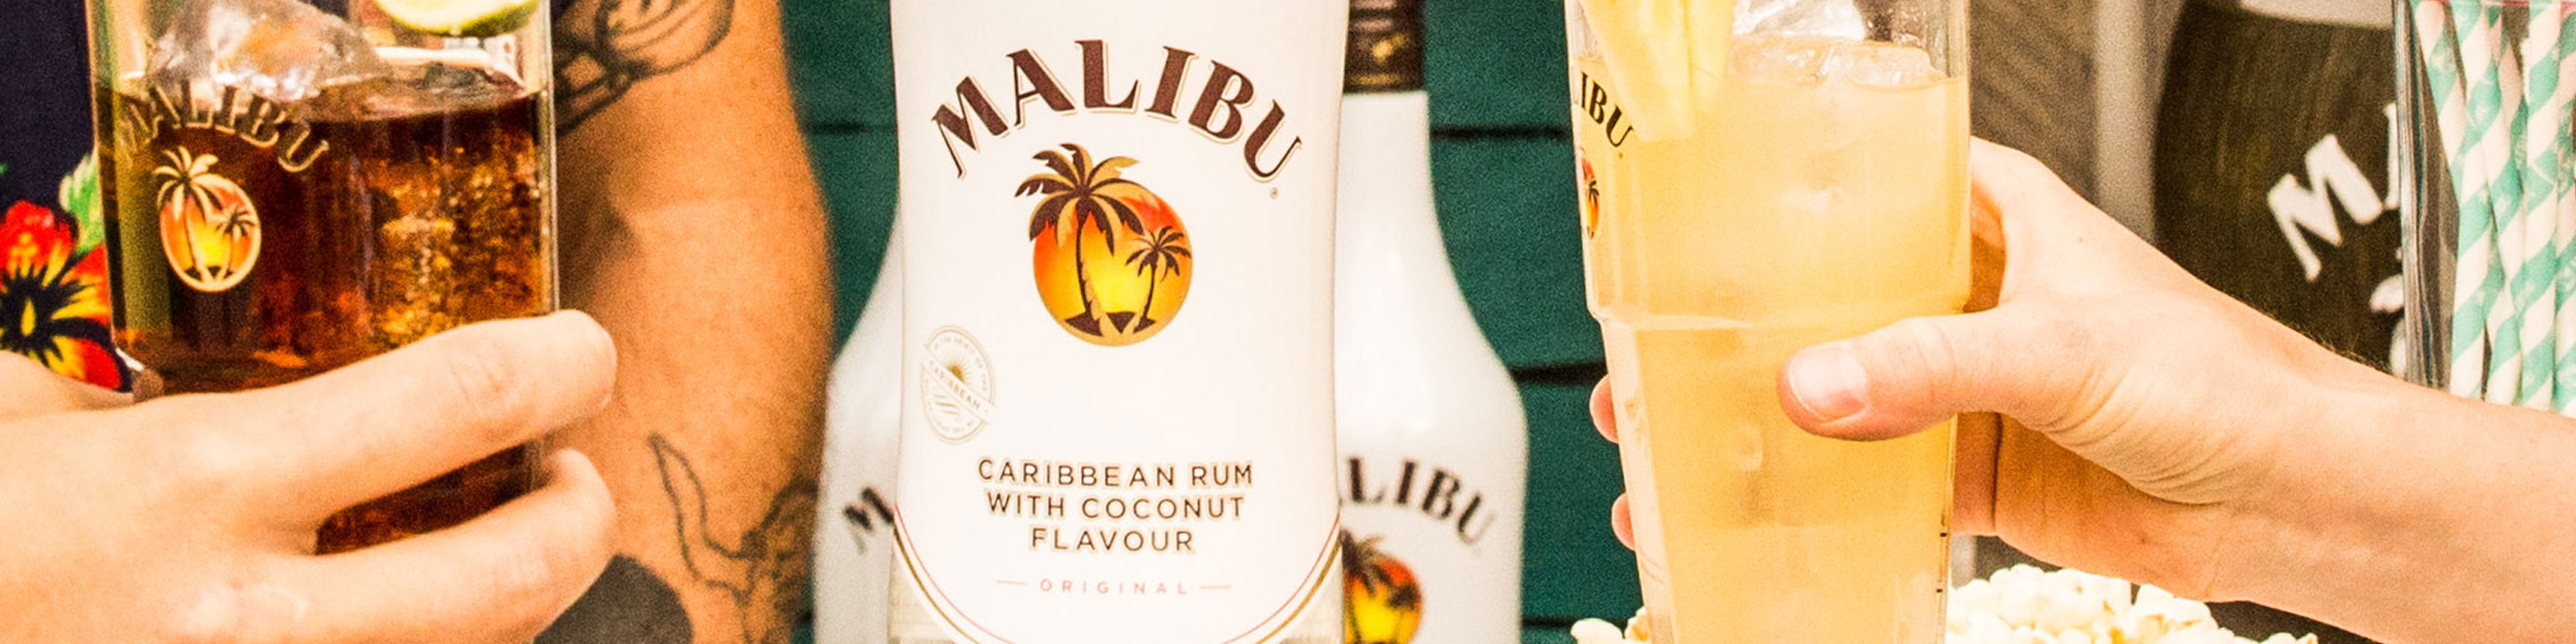 Nothing beats an original. But Malibu isn't just an original, it's sunshine in a bottle with a smooth fresh flavor. That's why it's the world's best-selling coconut flavored Caribbean rum. Buy Malibu online now from your nearby liquor store via Minibar Delivery.